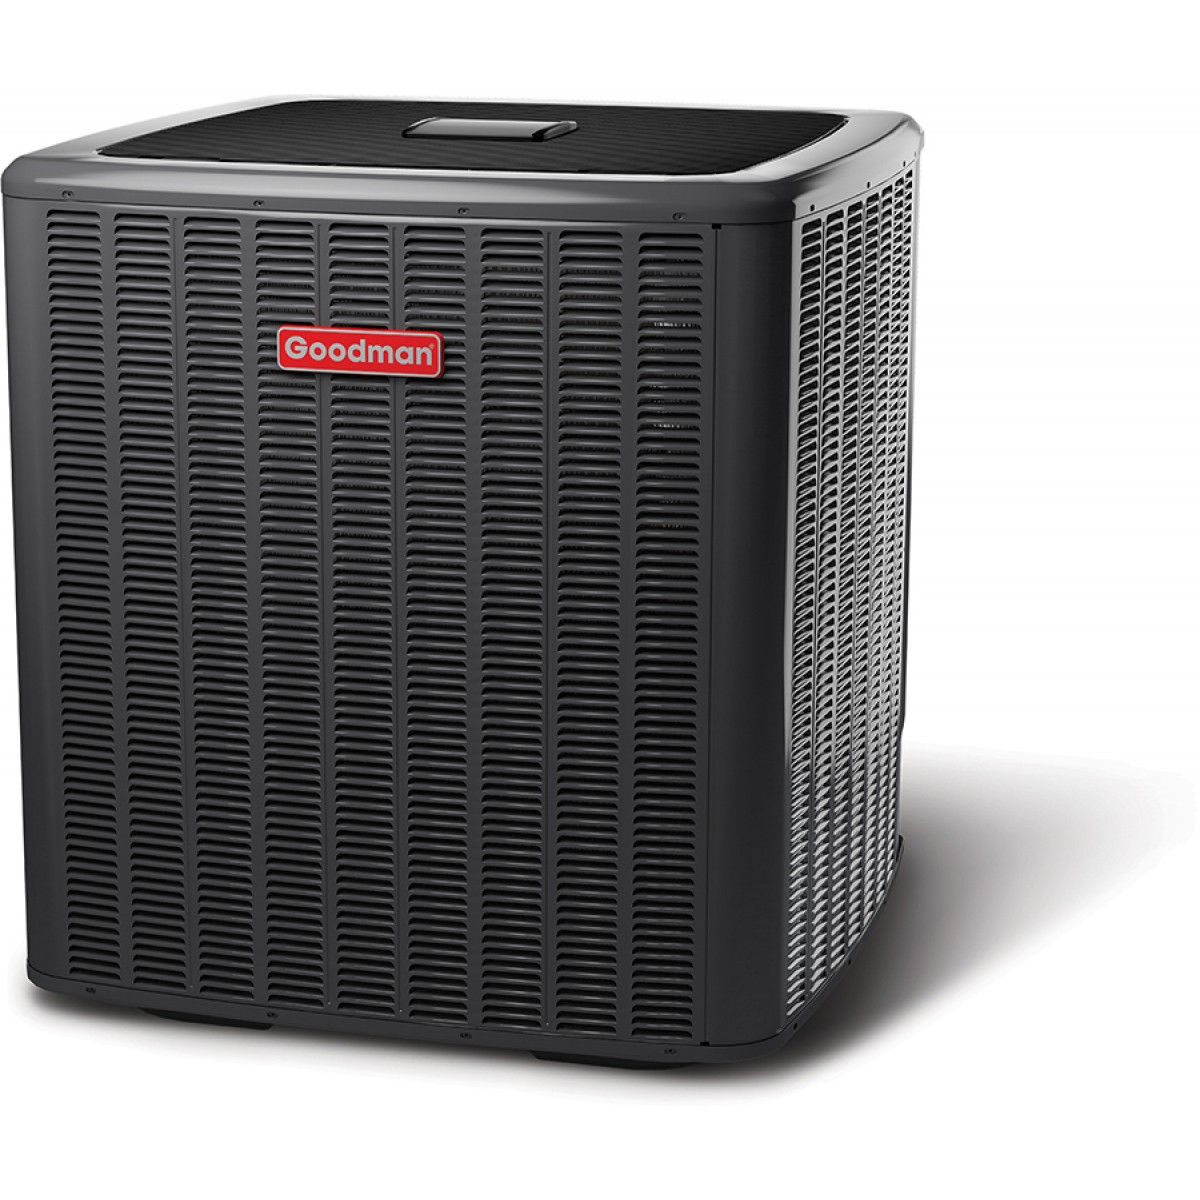 3 0 ton goodman 14 seer gsx straight cool condenser in 2 5 for Fan motor for goodman ac unit